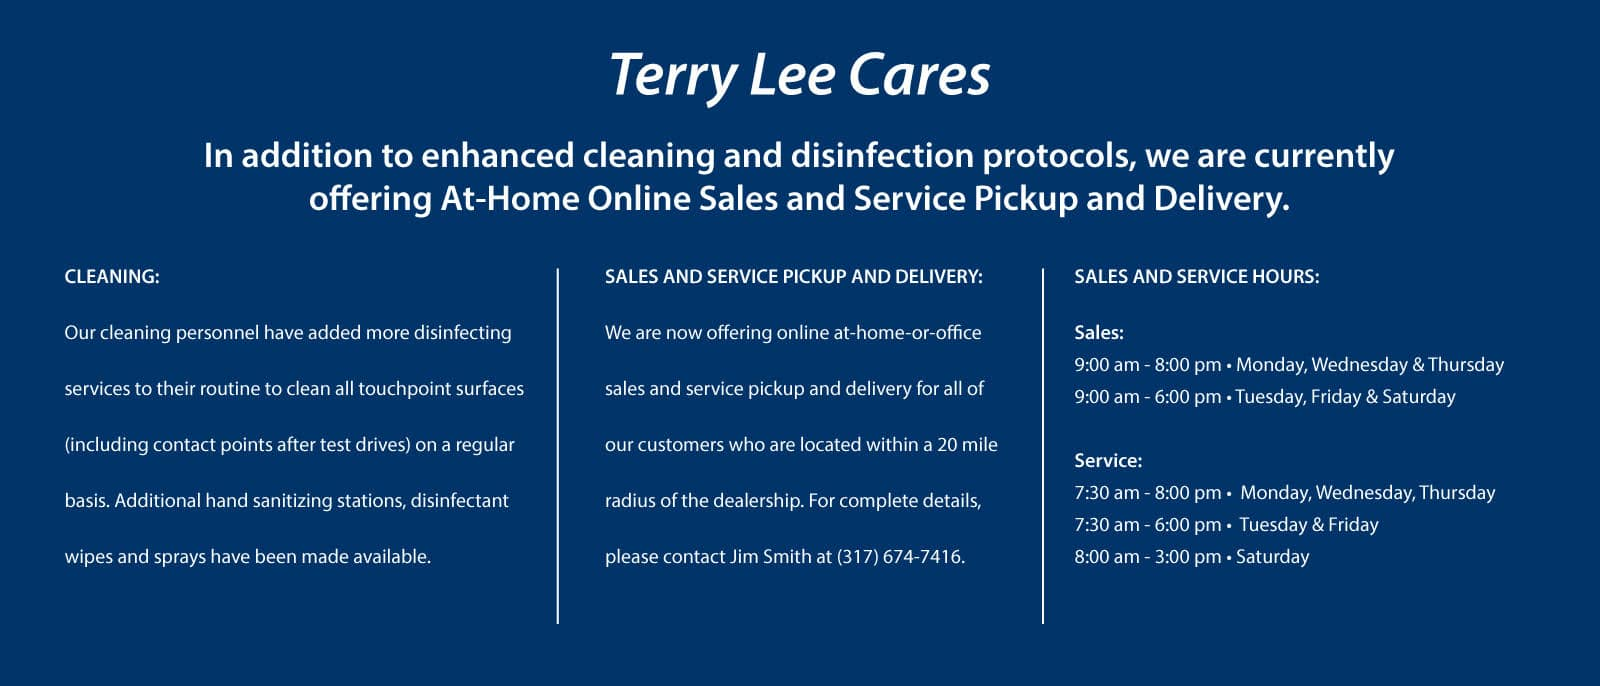 Terry Lee cares